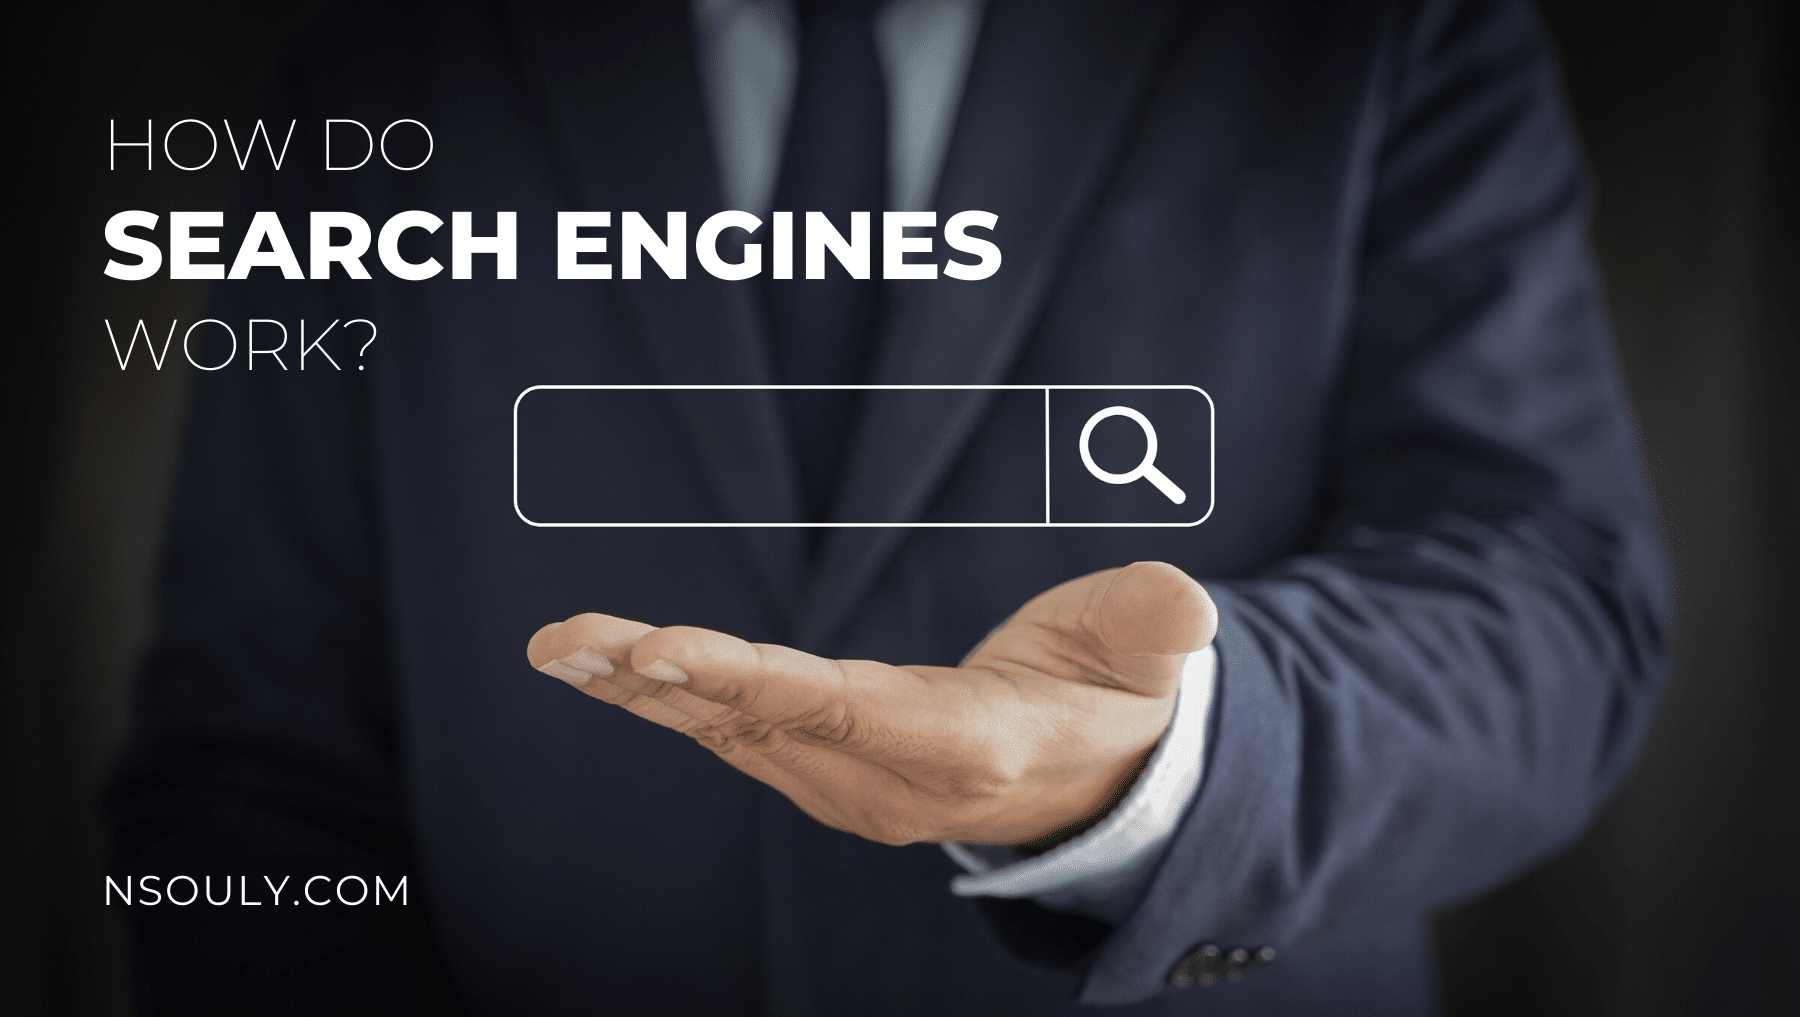 How Do Search Engines Work and What's Their Importance?